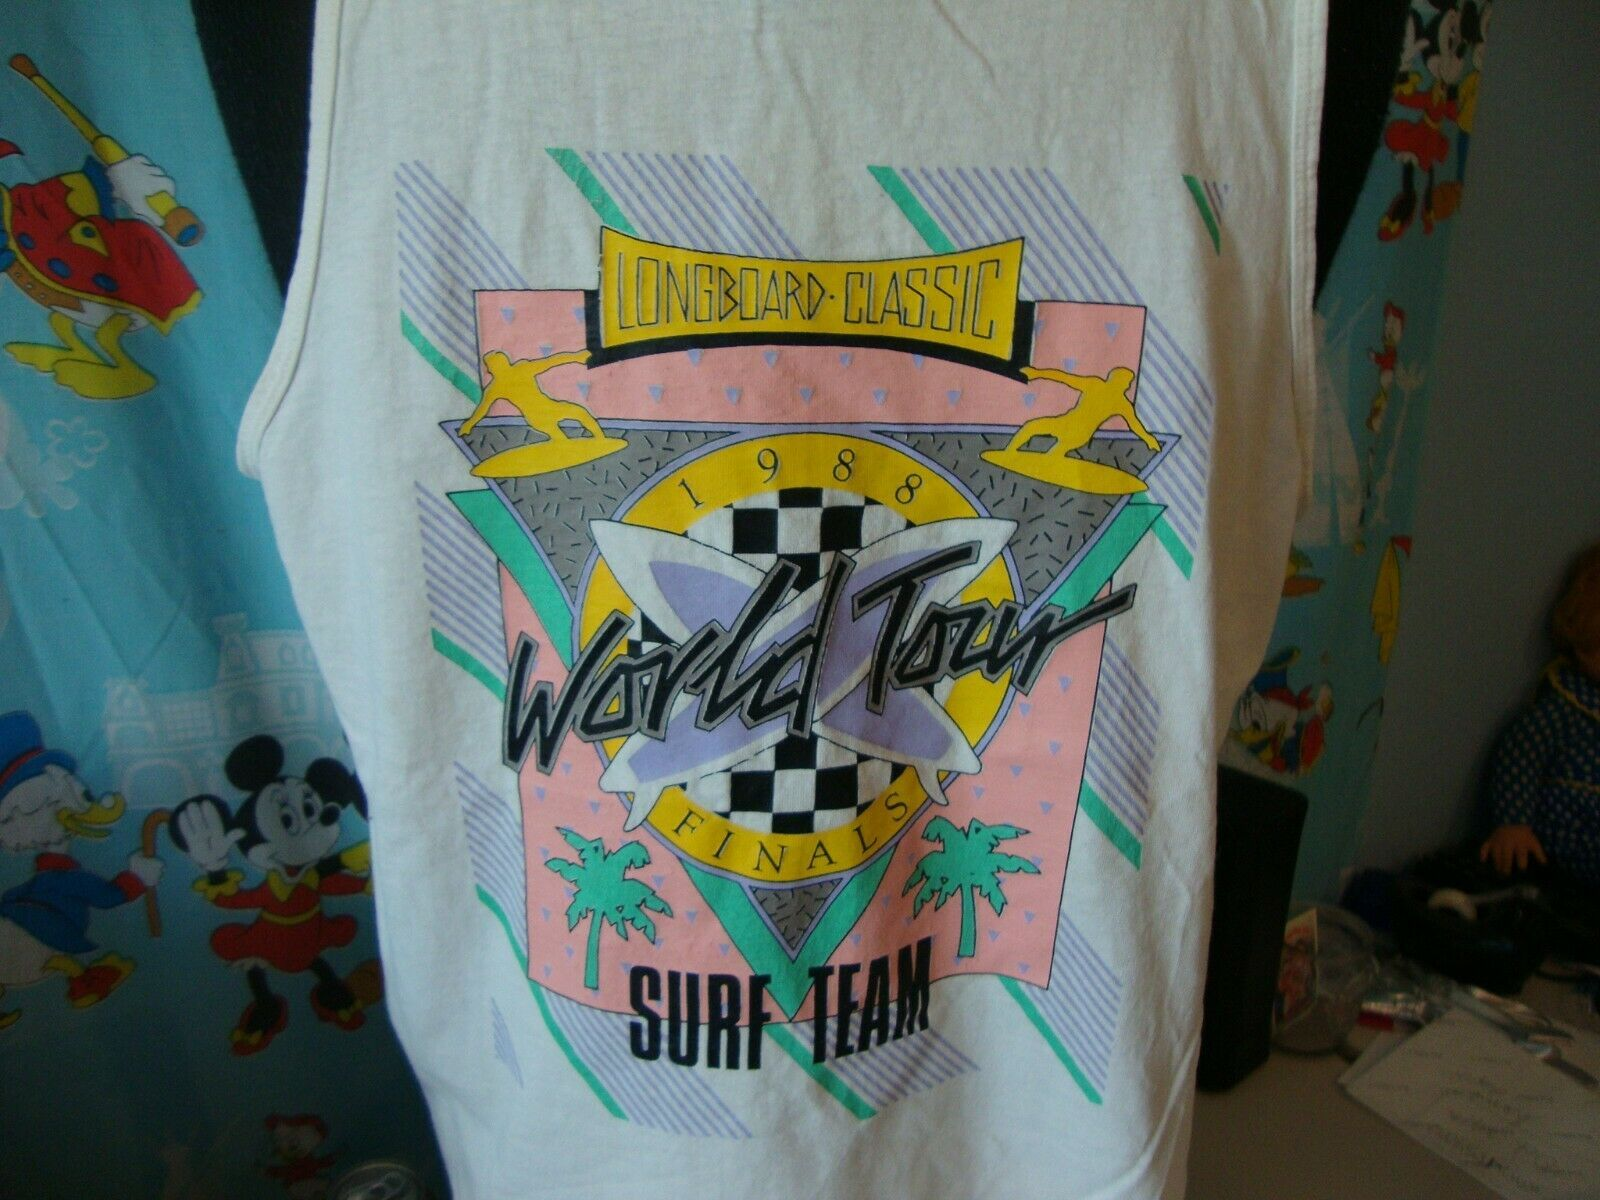 Primary image for Vintage 80's Longboard Classic 1988 Surf Team World Tour t shirt Tank Top XL